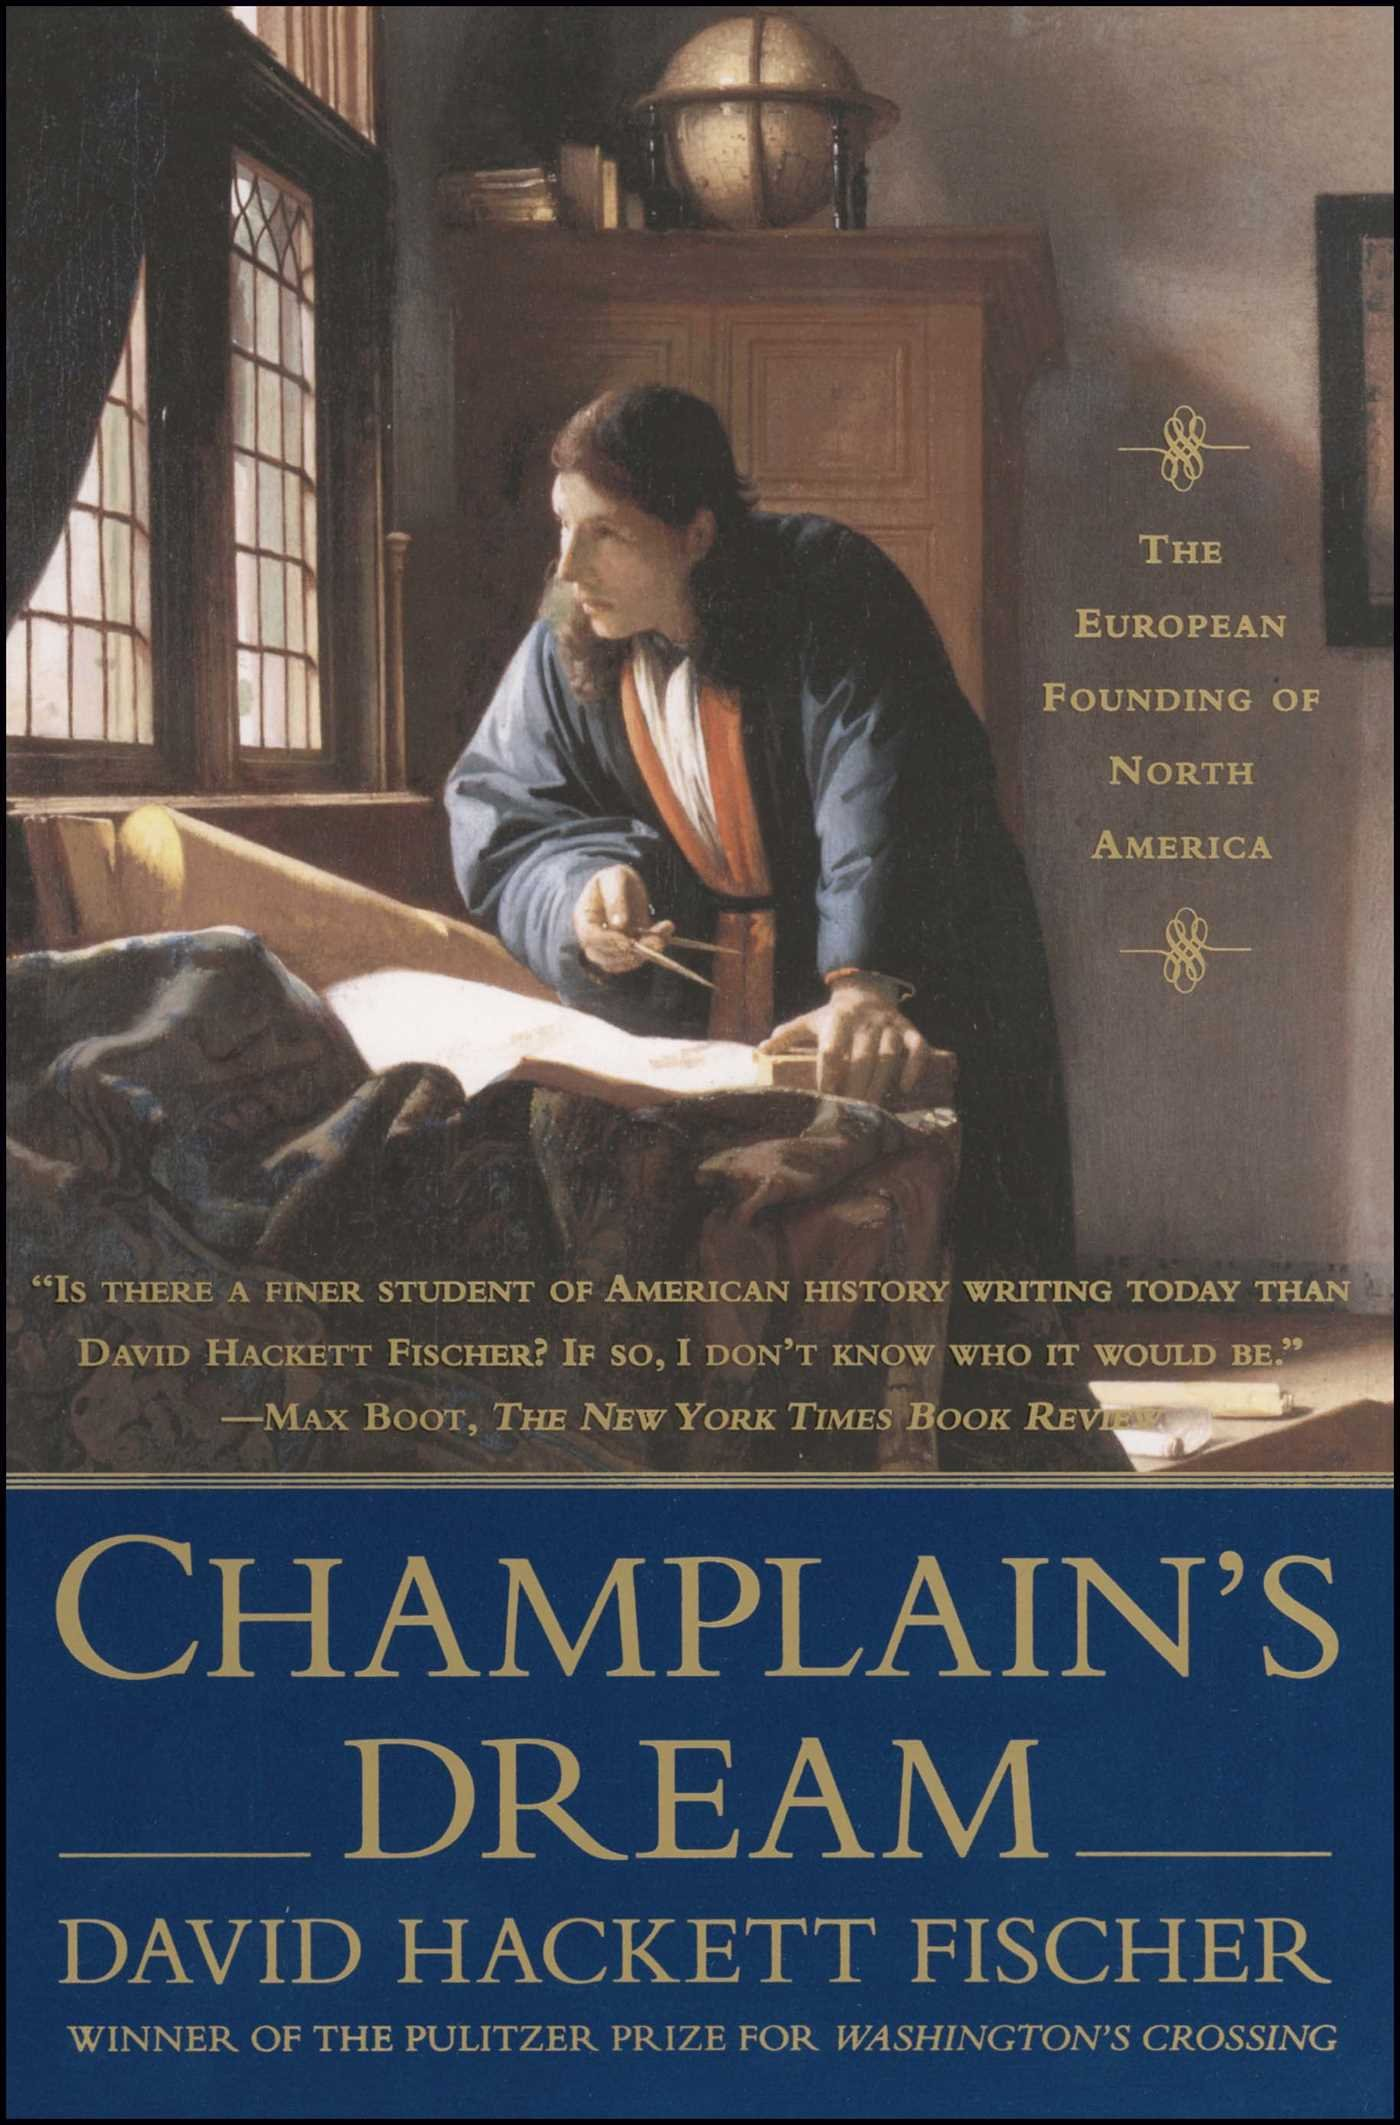 Champlain's Dream_David Hackett Fischer